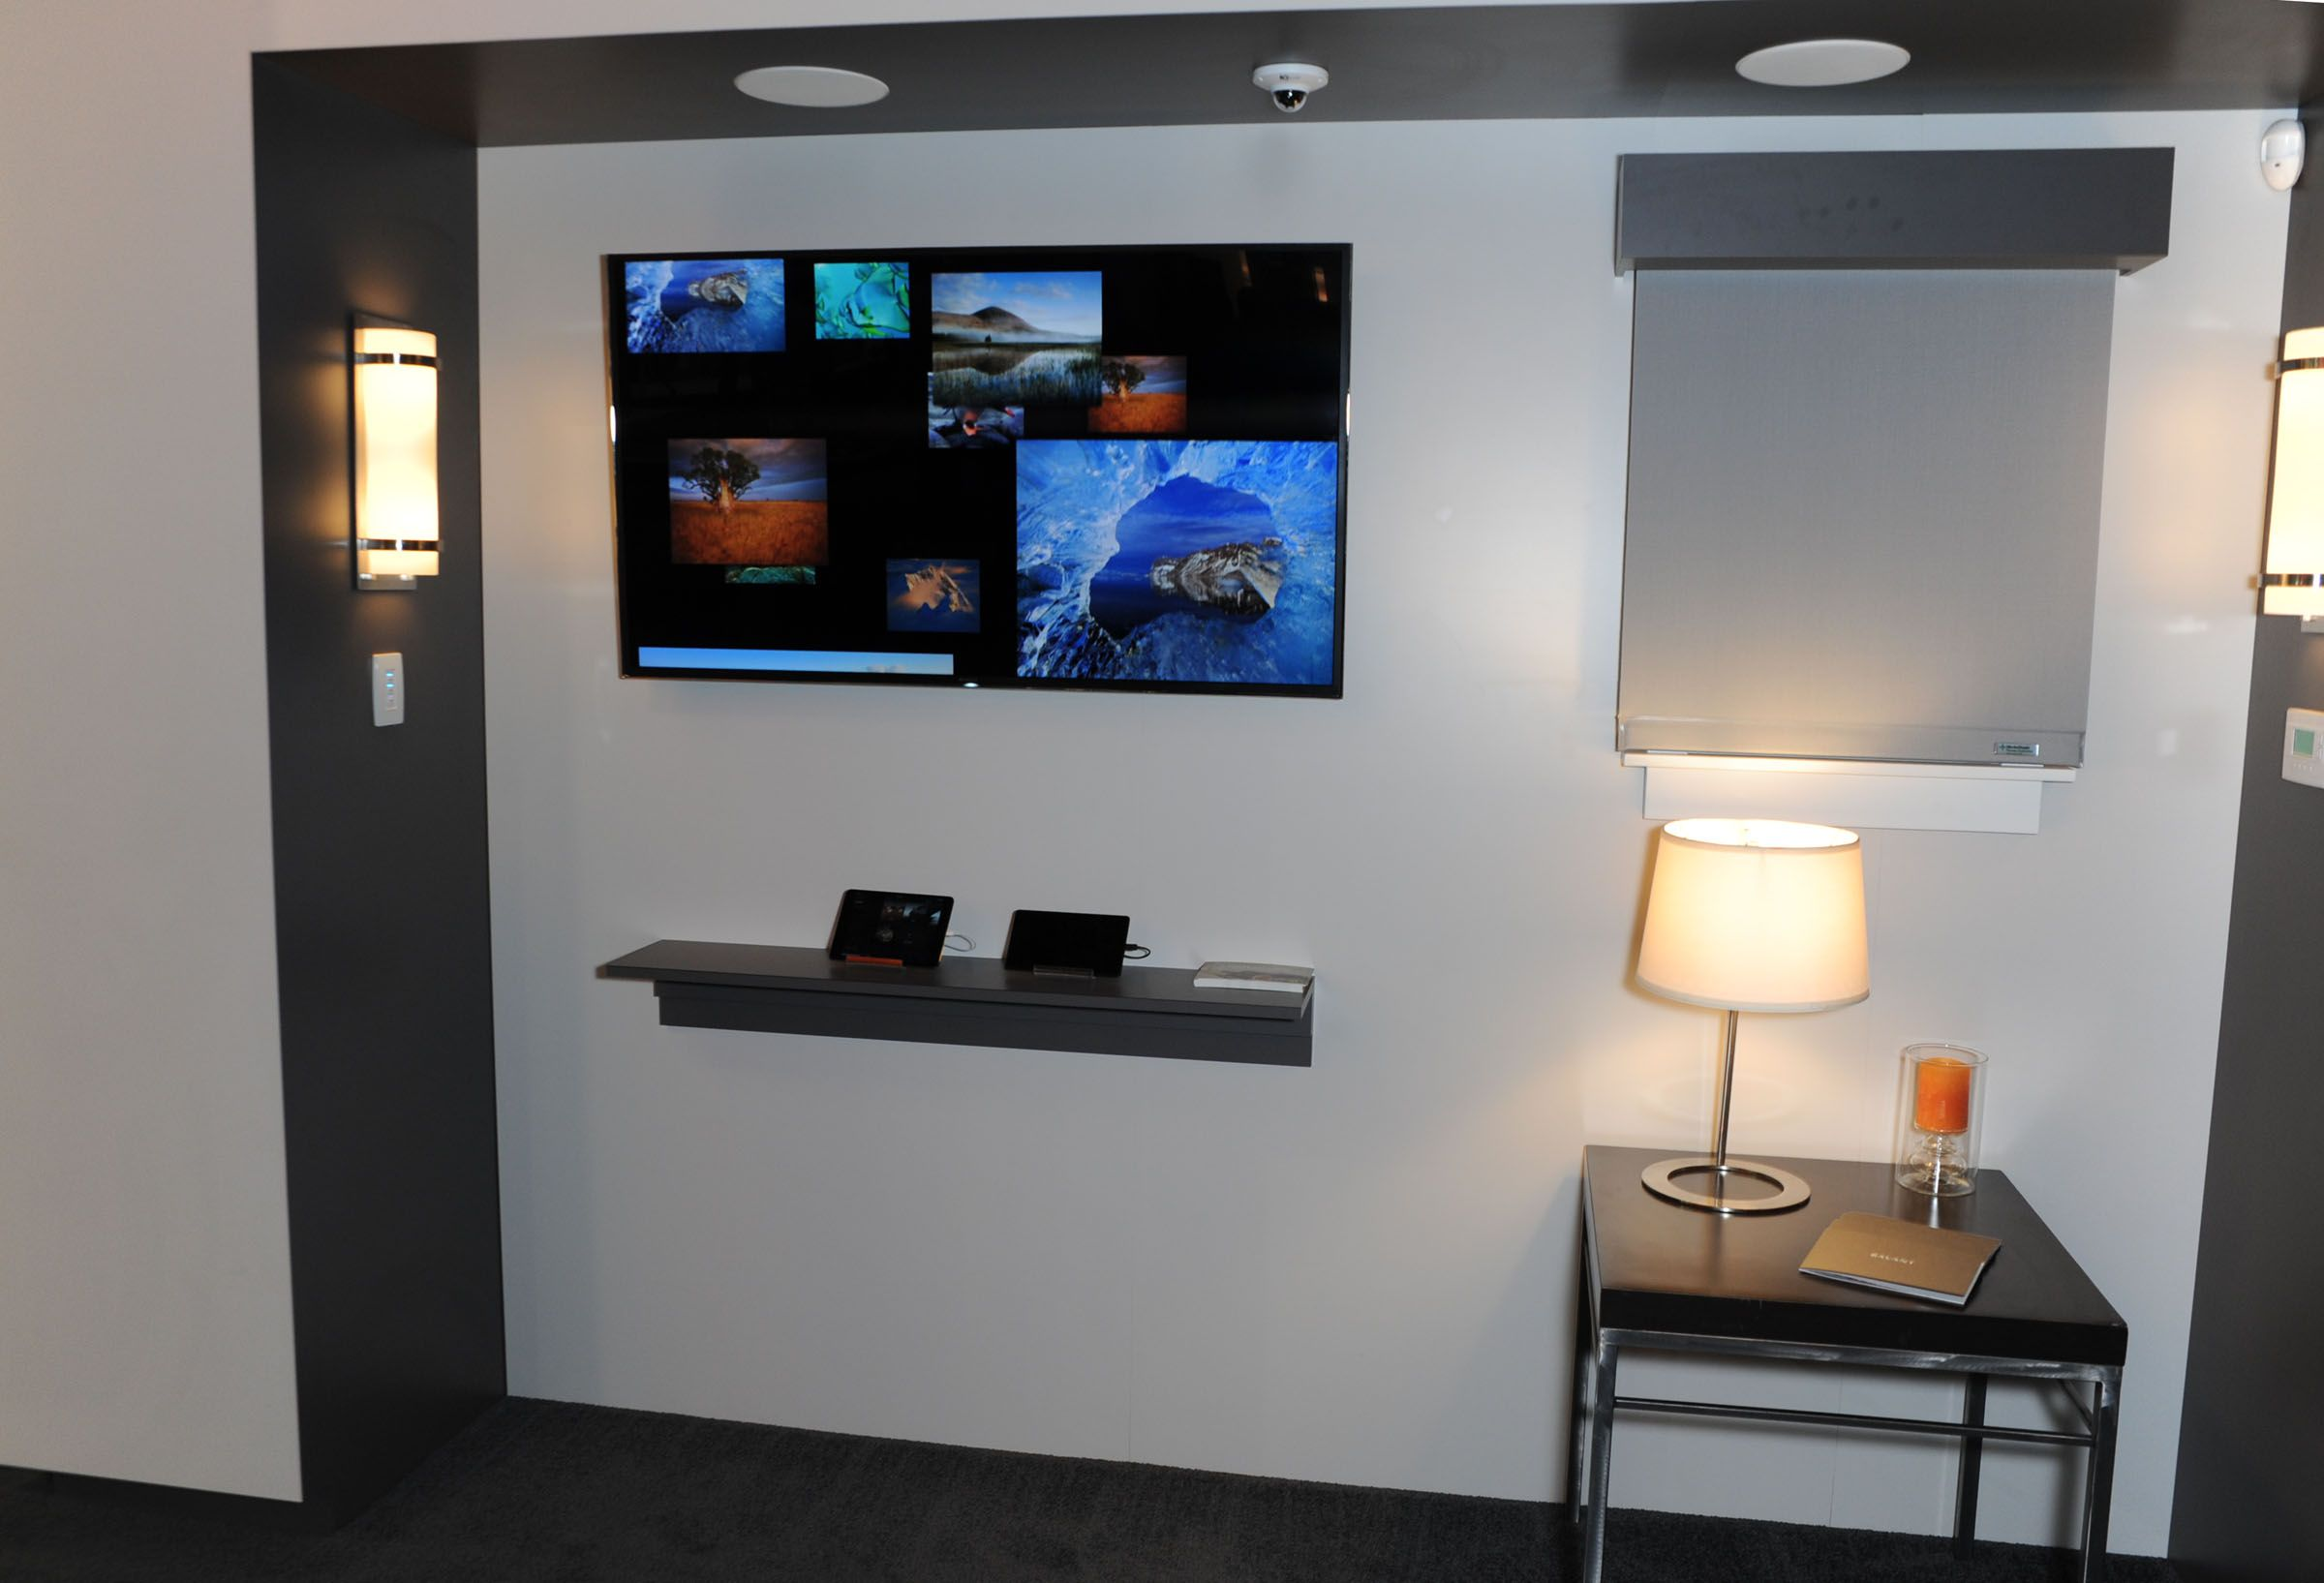 Live demo station at CEDIA - where integrators could see the new Savant App firsthand!